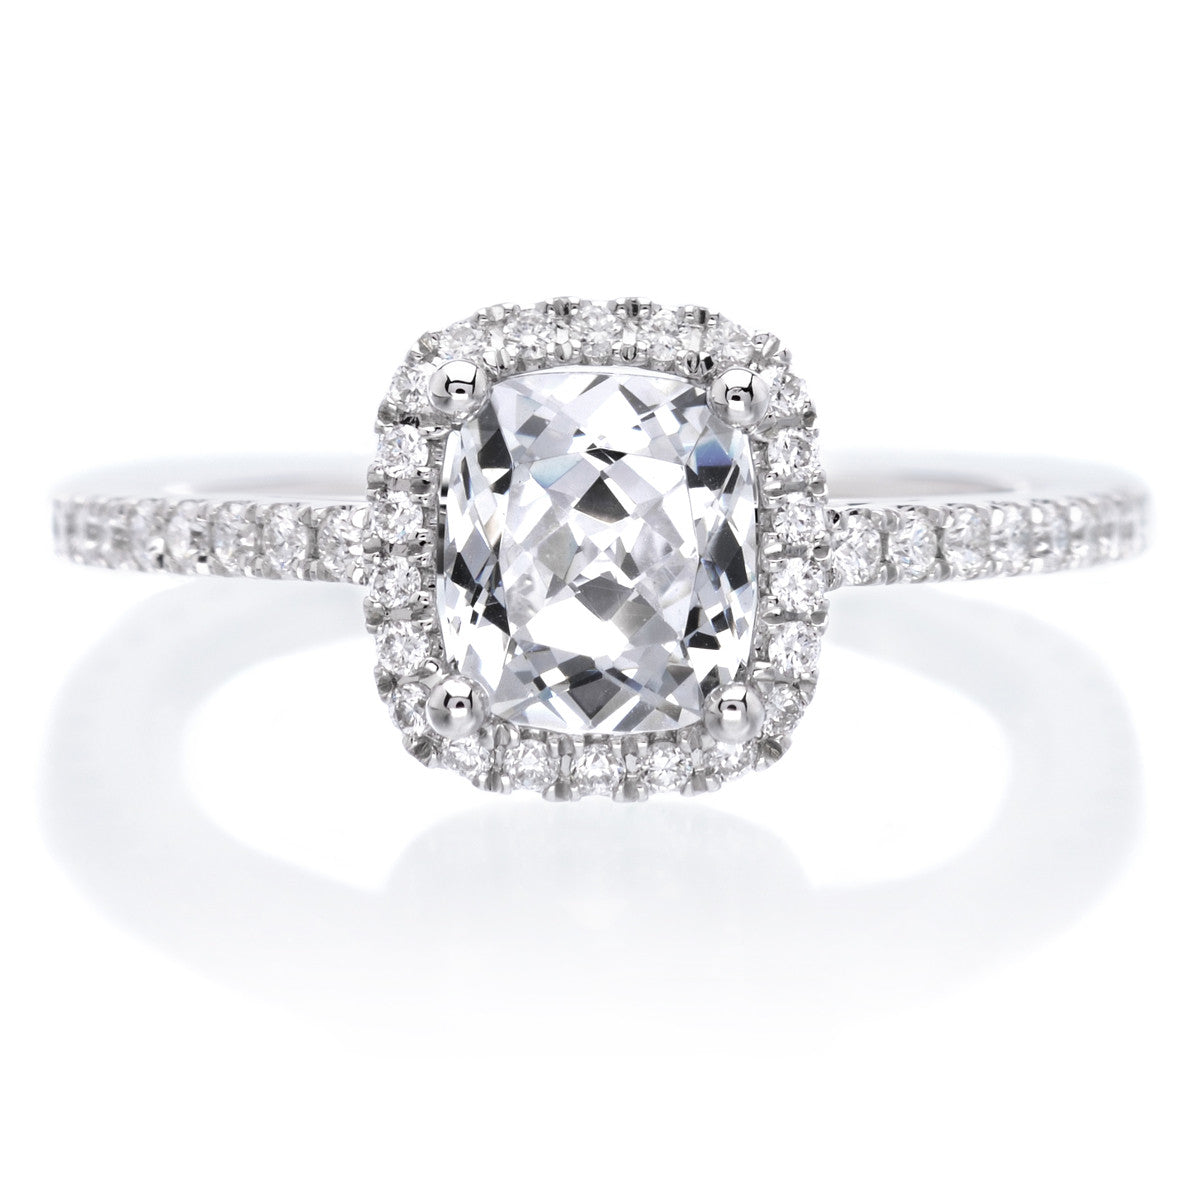 Unique Cushion Cut Halo Diamond Engagement Ring